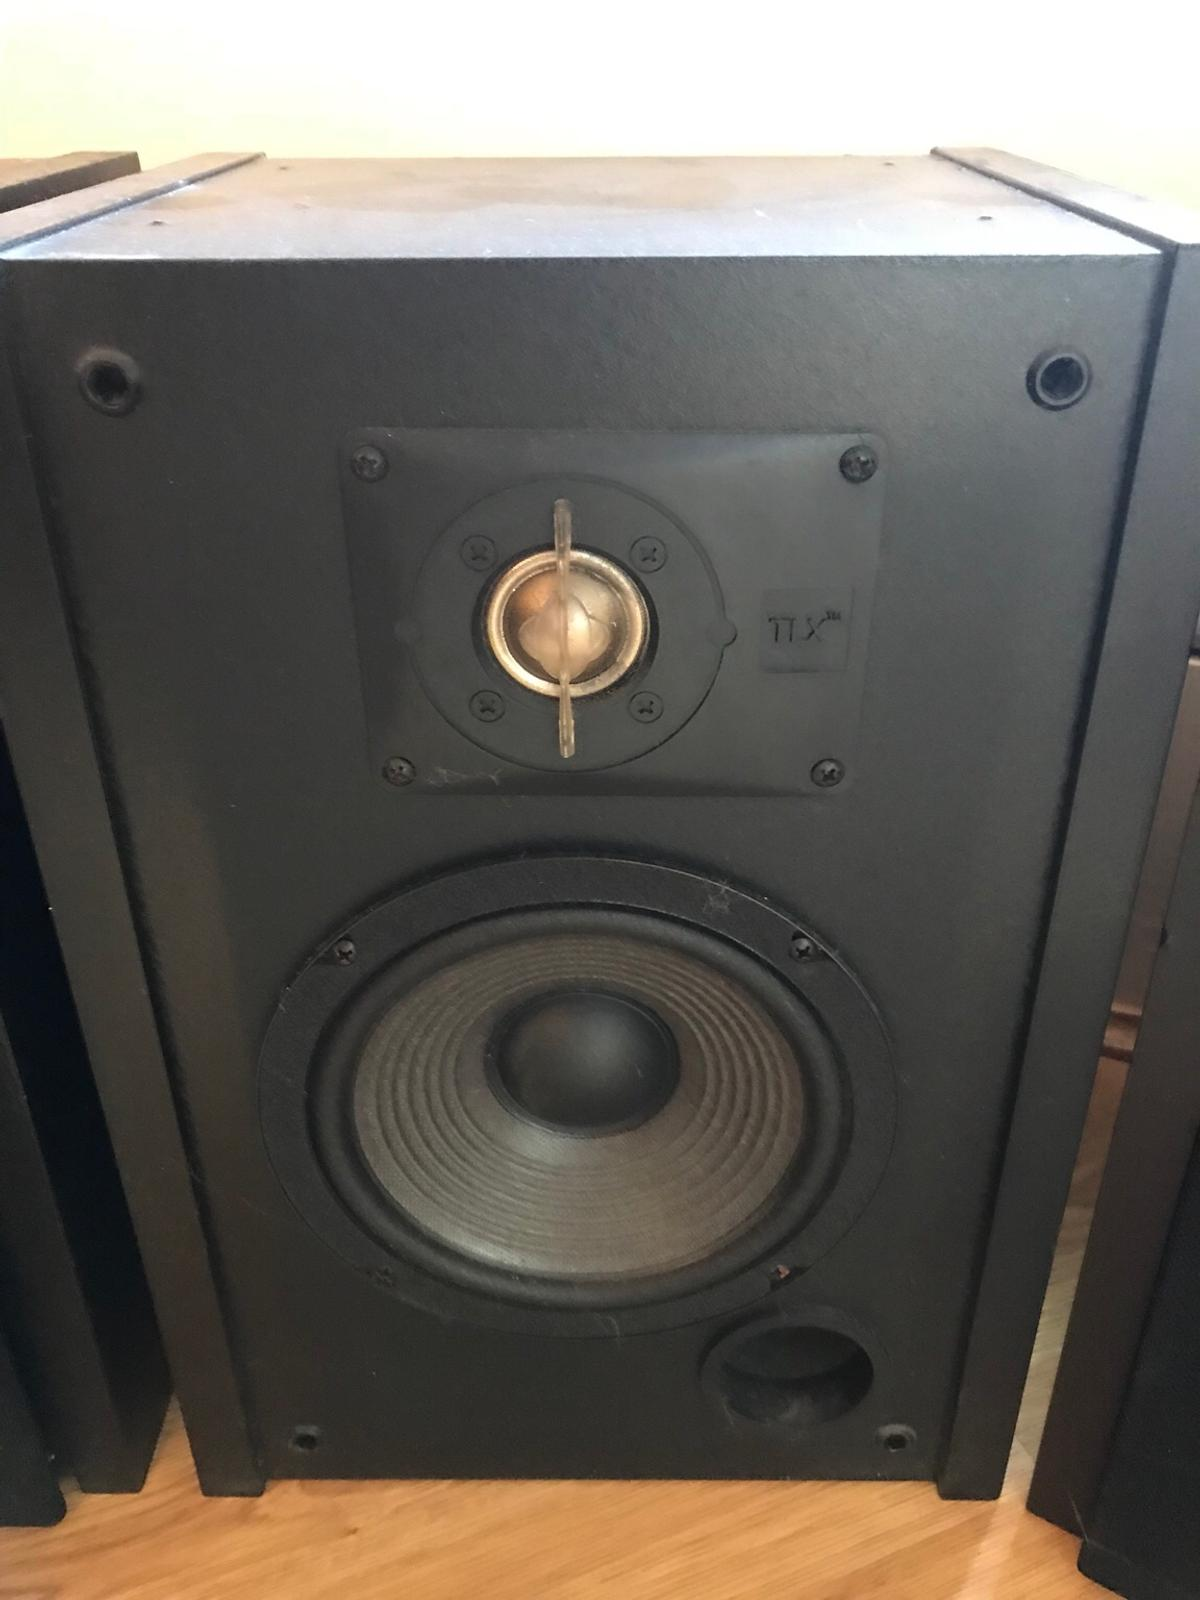 4x Powerful JBL Speakers - Excellent Sound in DD2 Dundee for